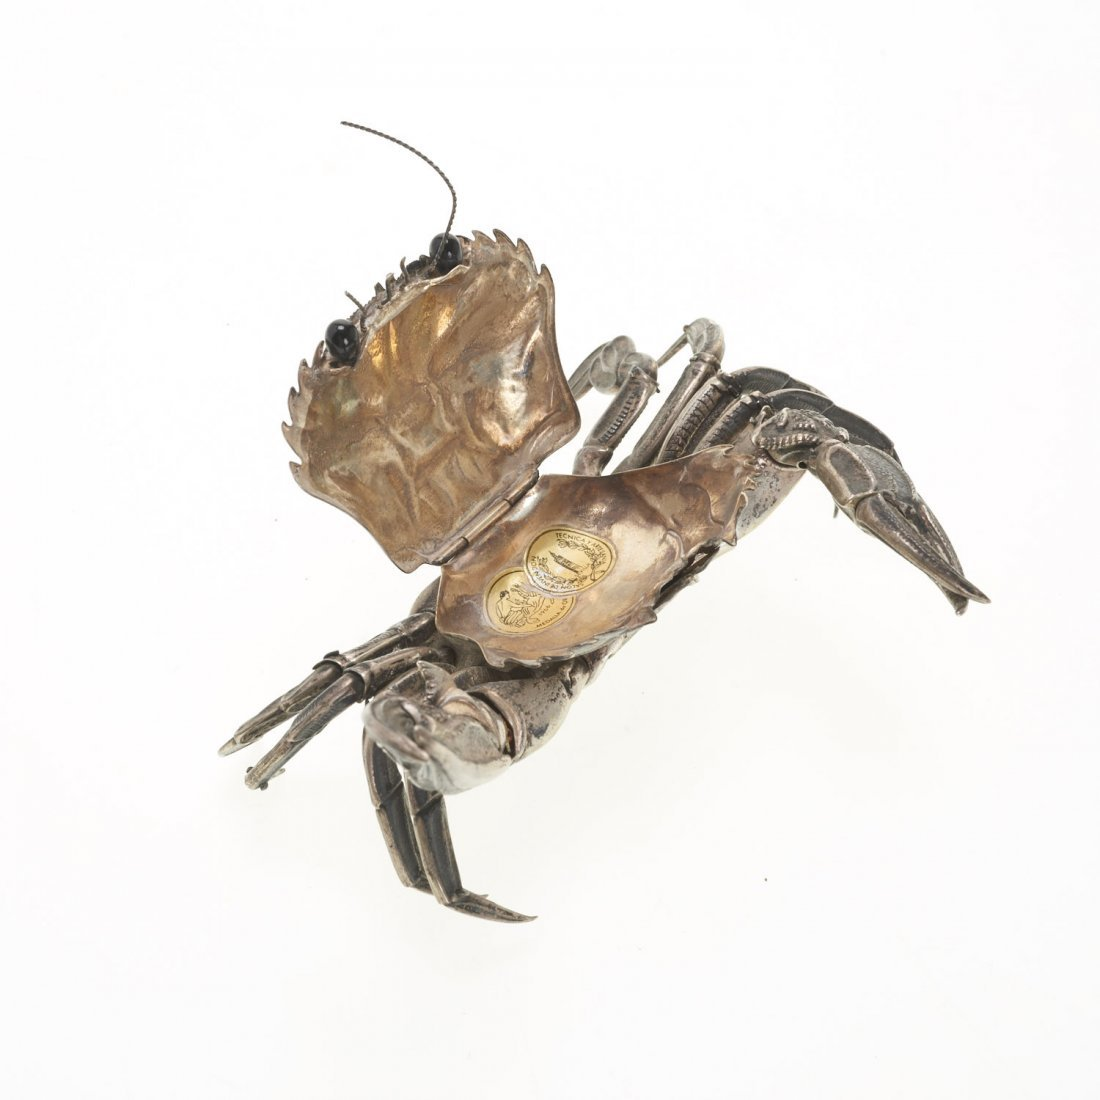 Spanish silver articulated model of a crab - 5